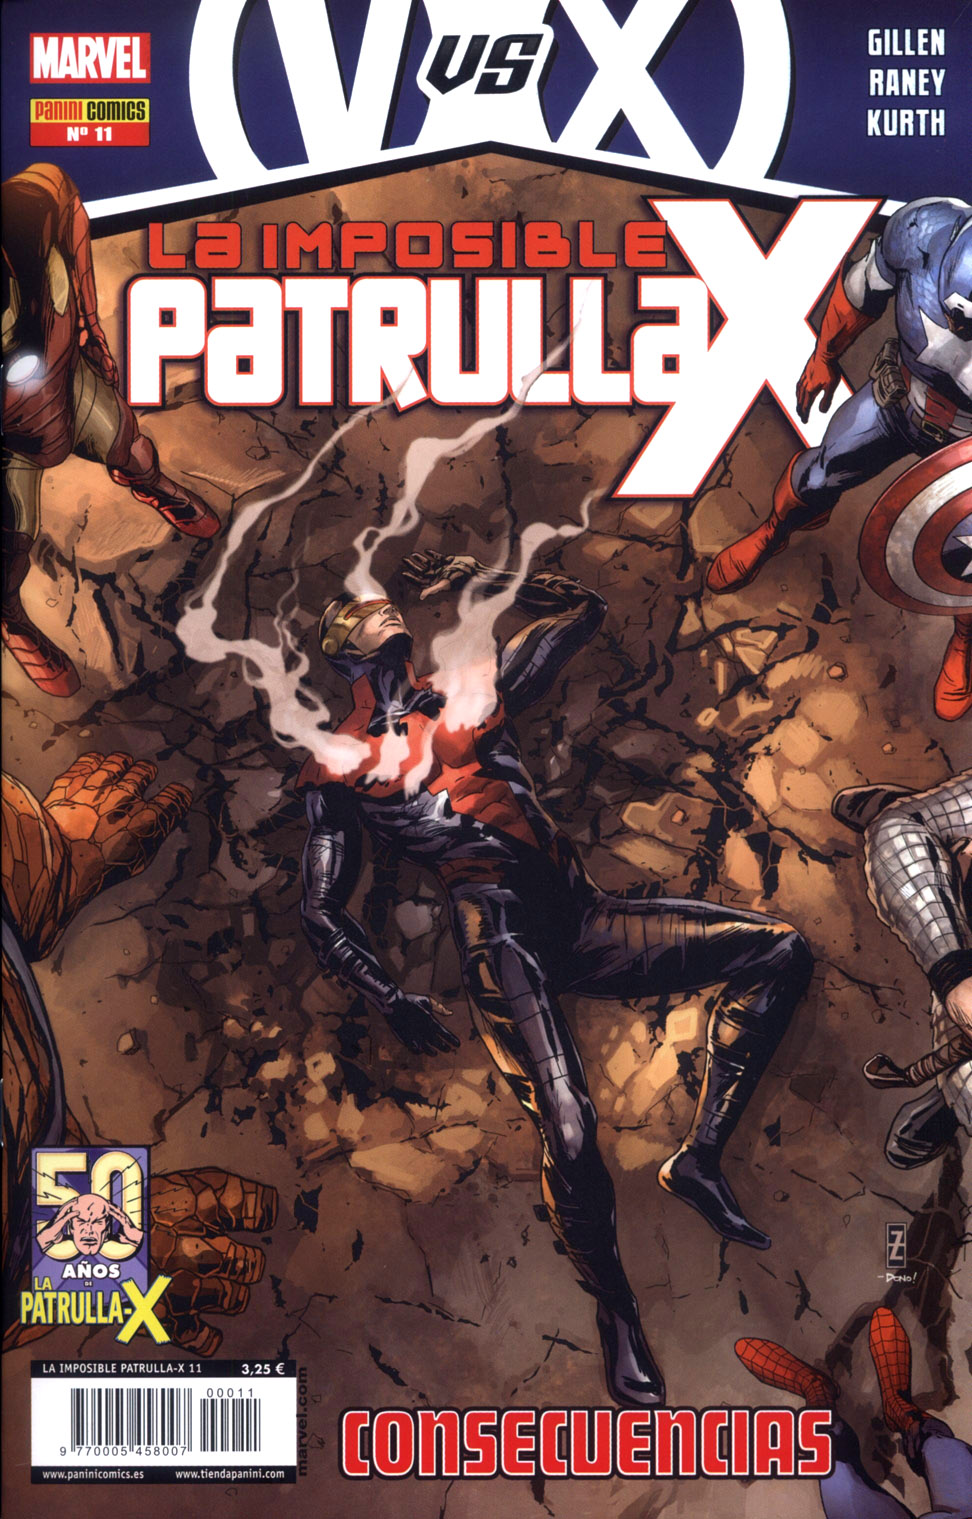 La imposible Patrulla X 11 - (AvX Consequences 1- 2 USA)